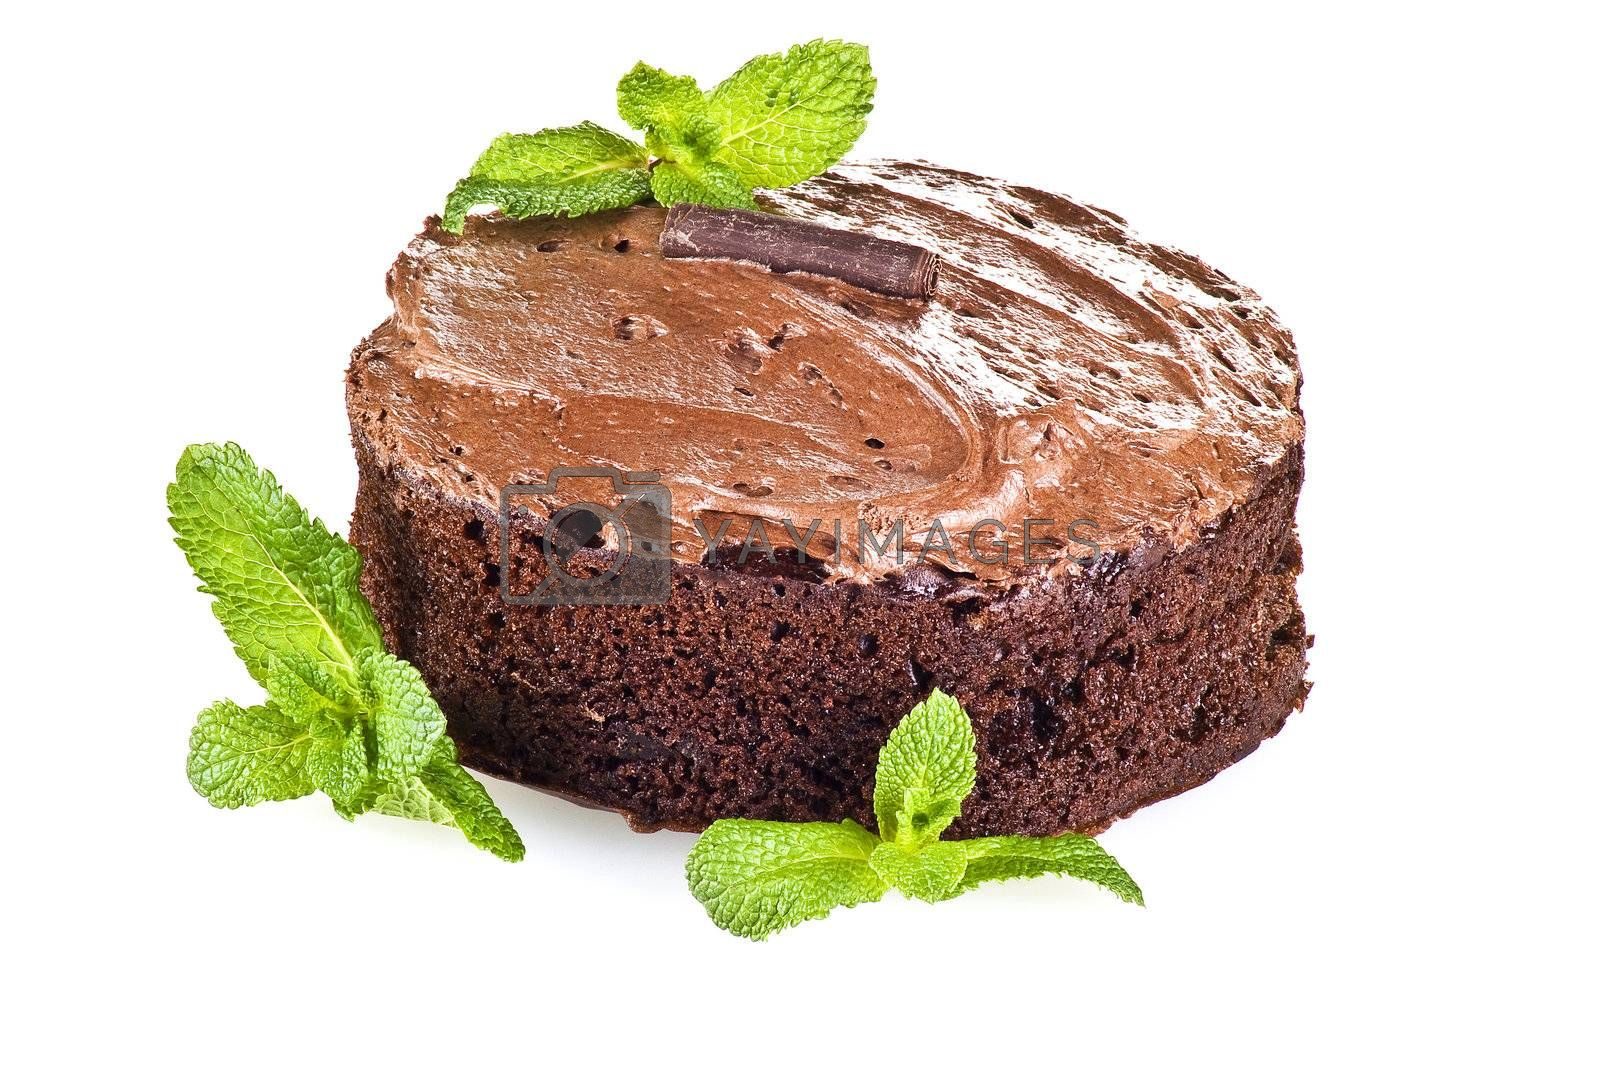 Chocolate cake and mint by caldix